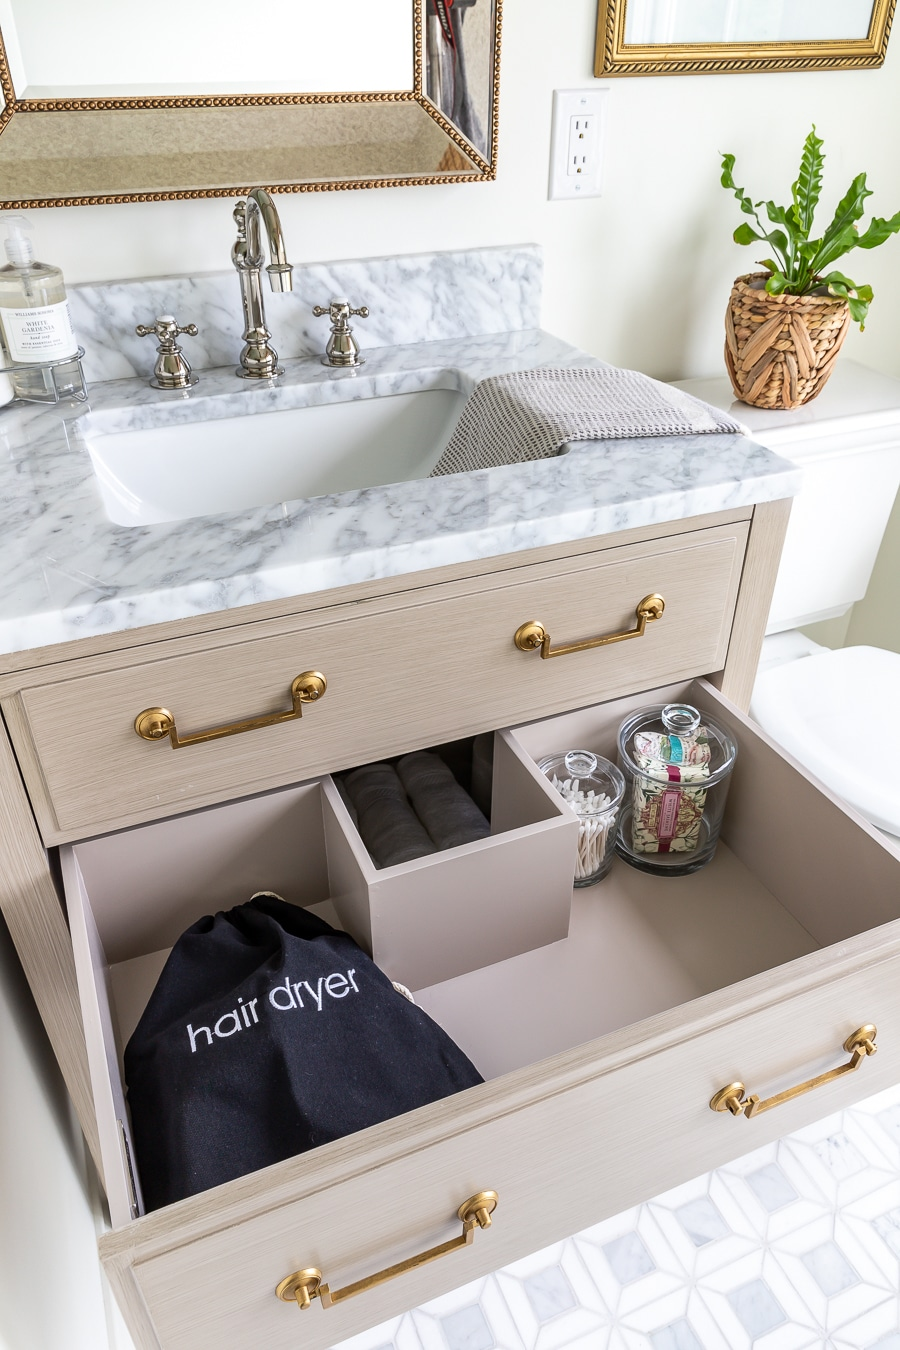 How to stock a guest bathroom